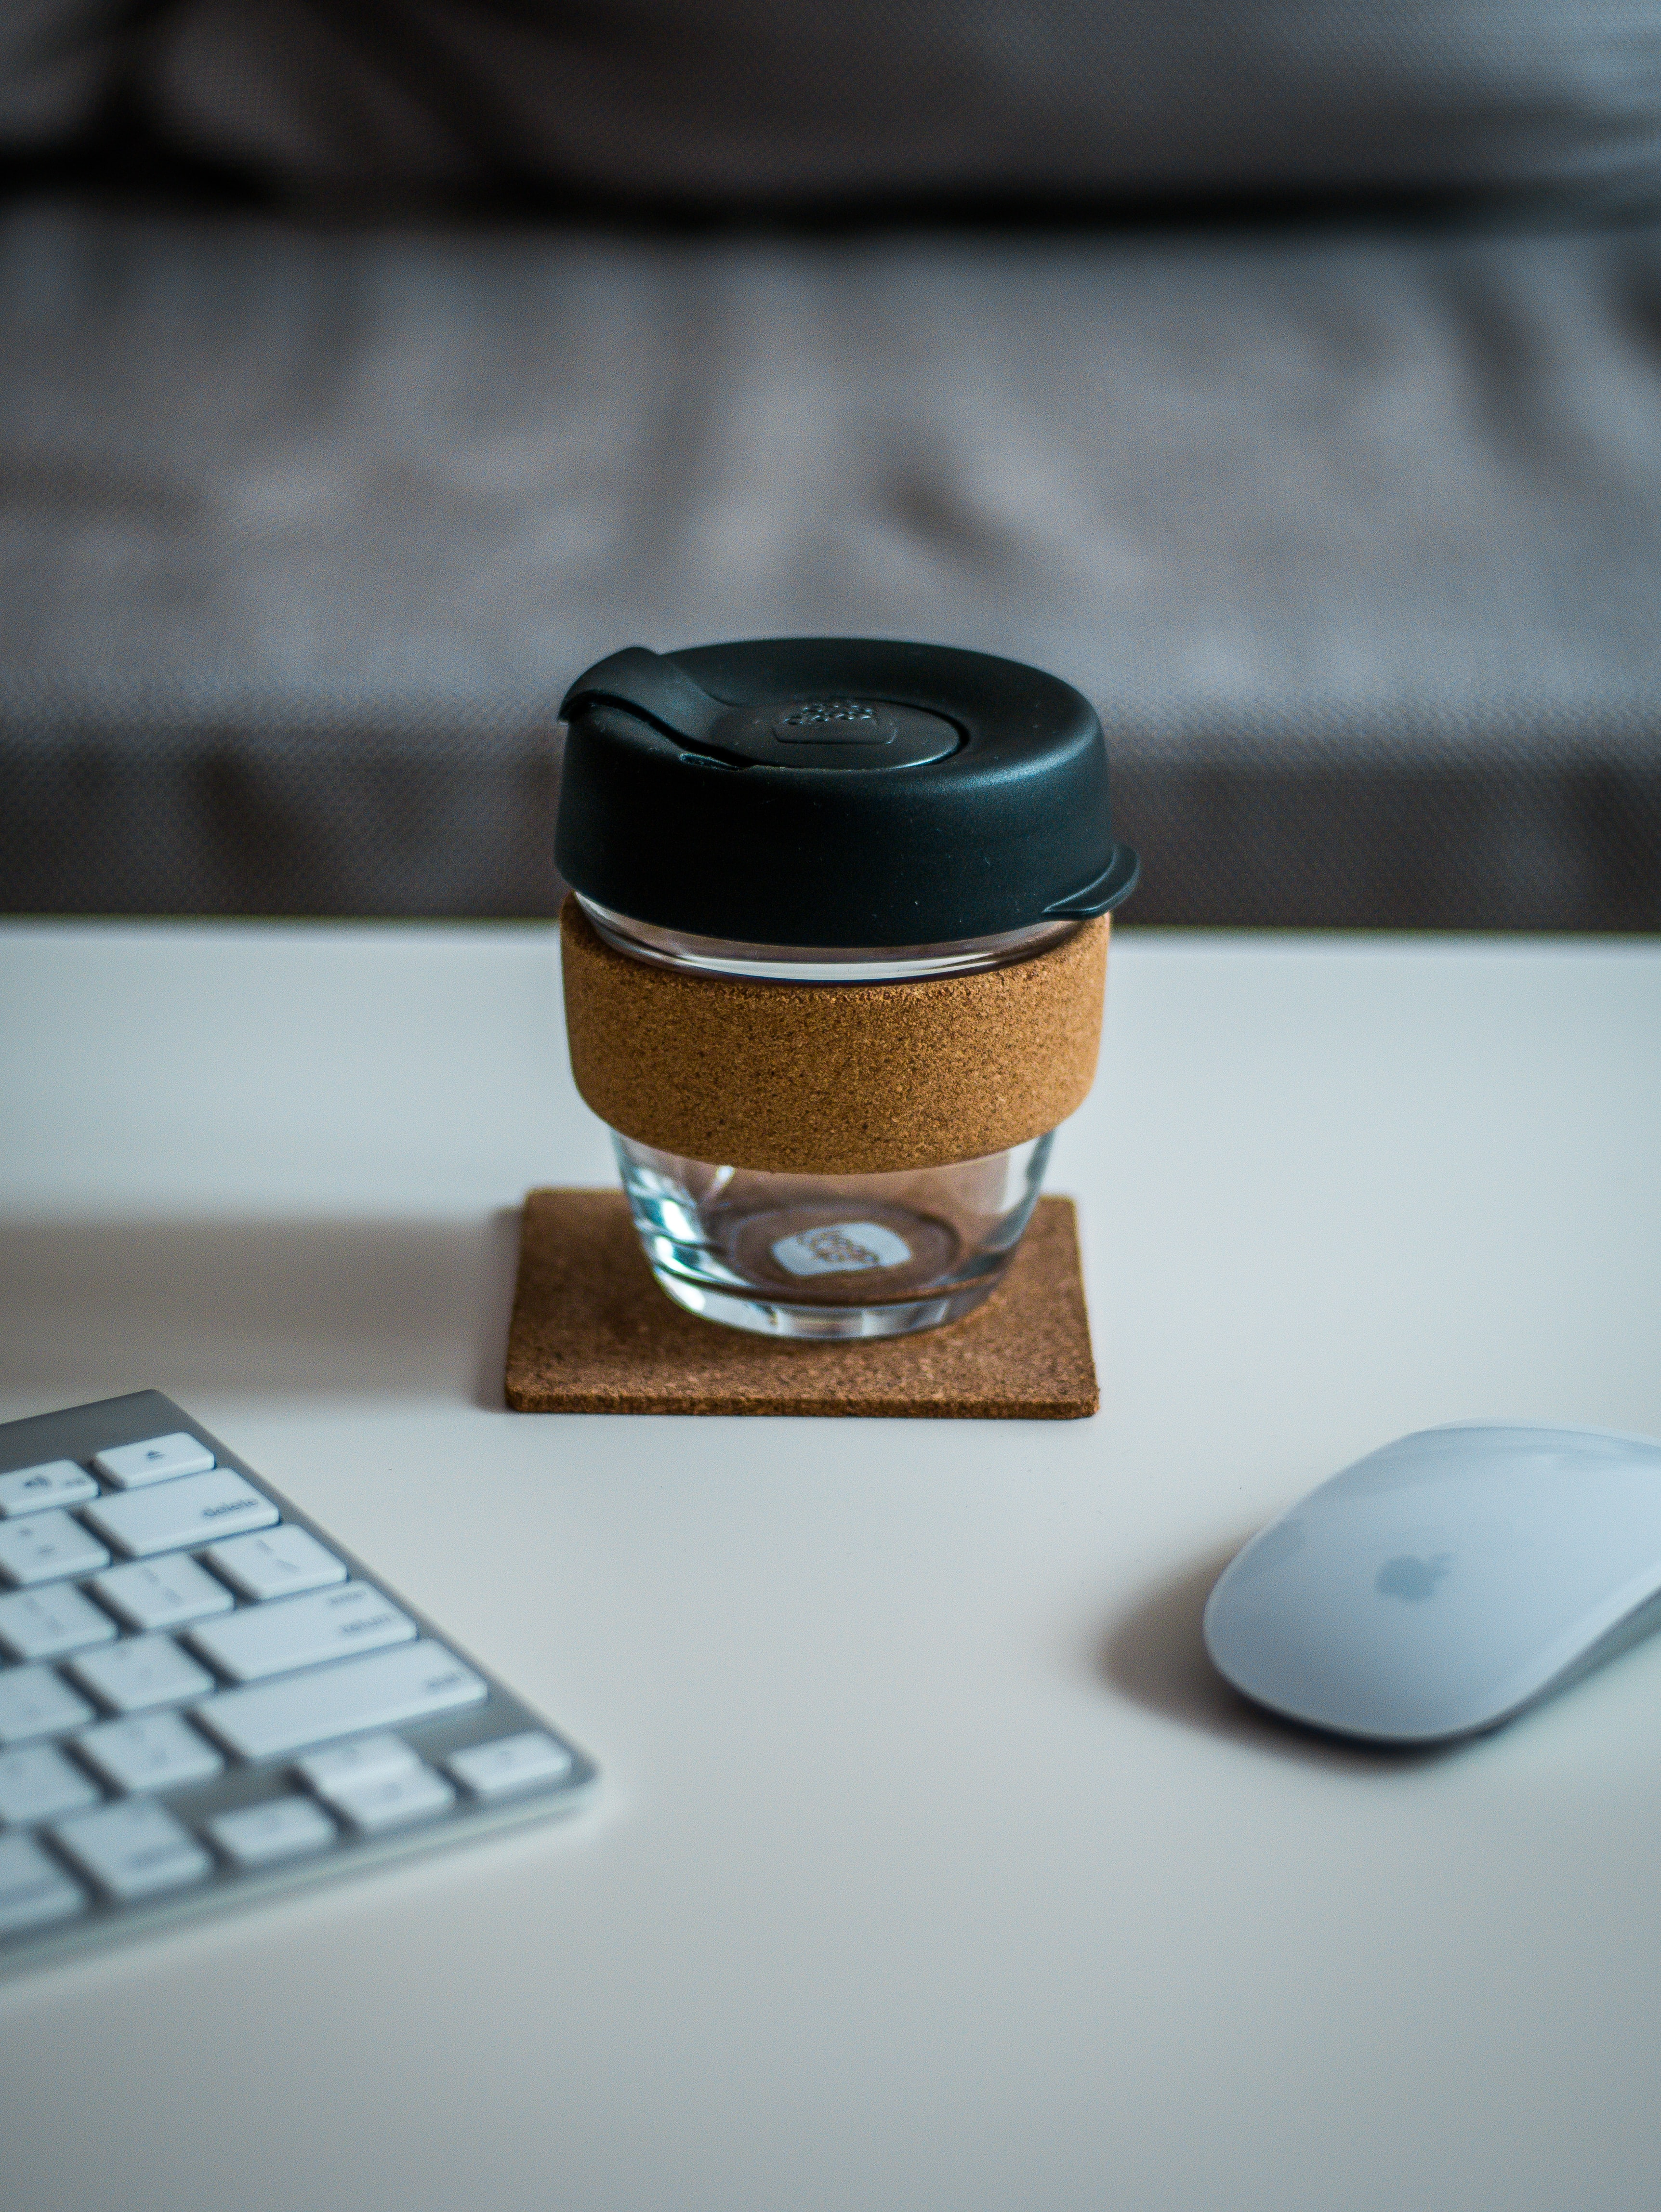 A small espresso cup with a lid on a desk